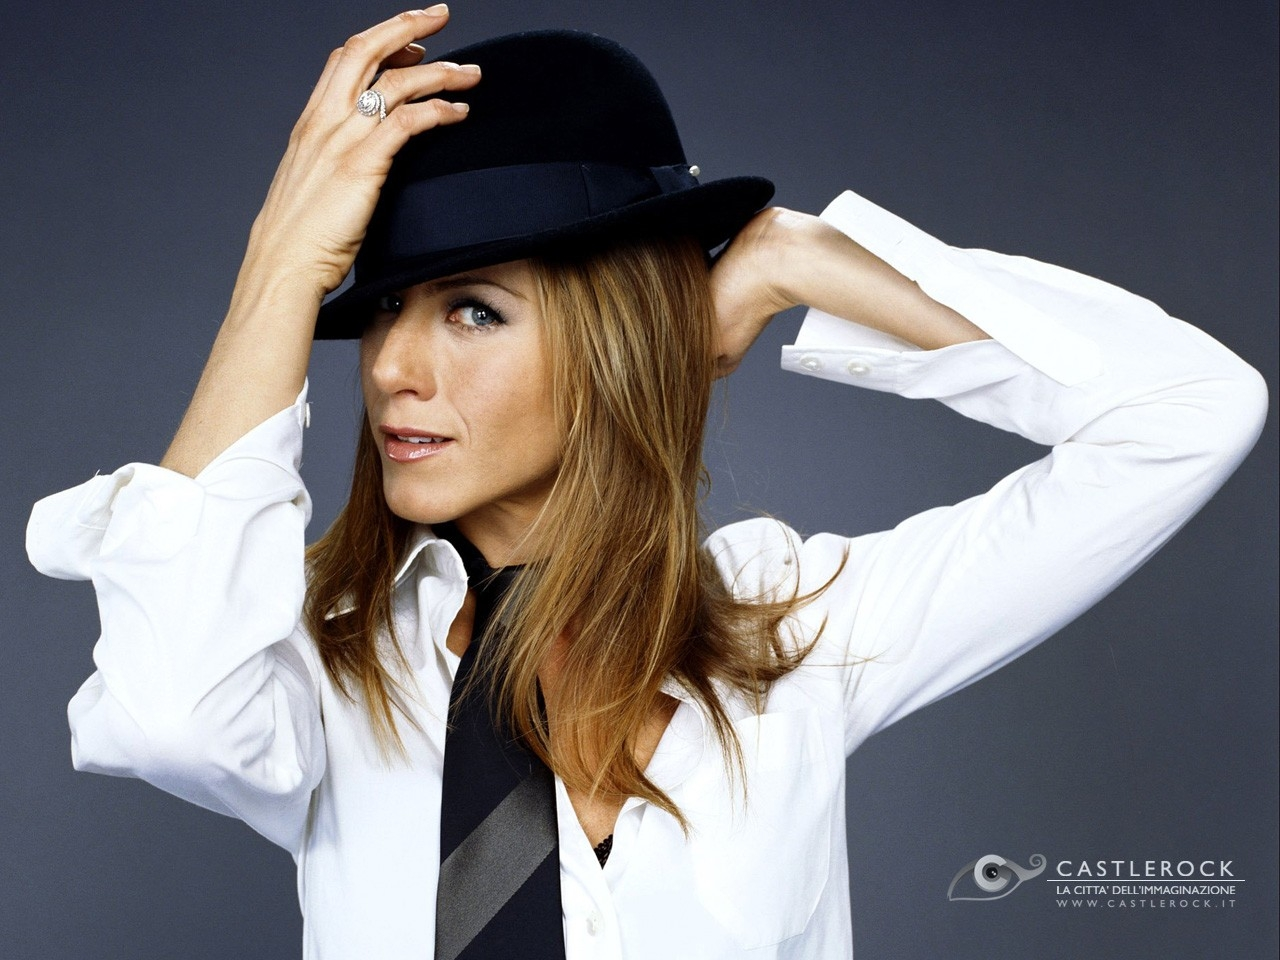 Wallpaper di Jennifer Aniston con un cappello